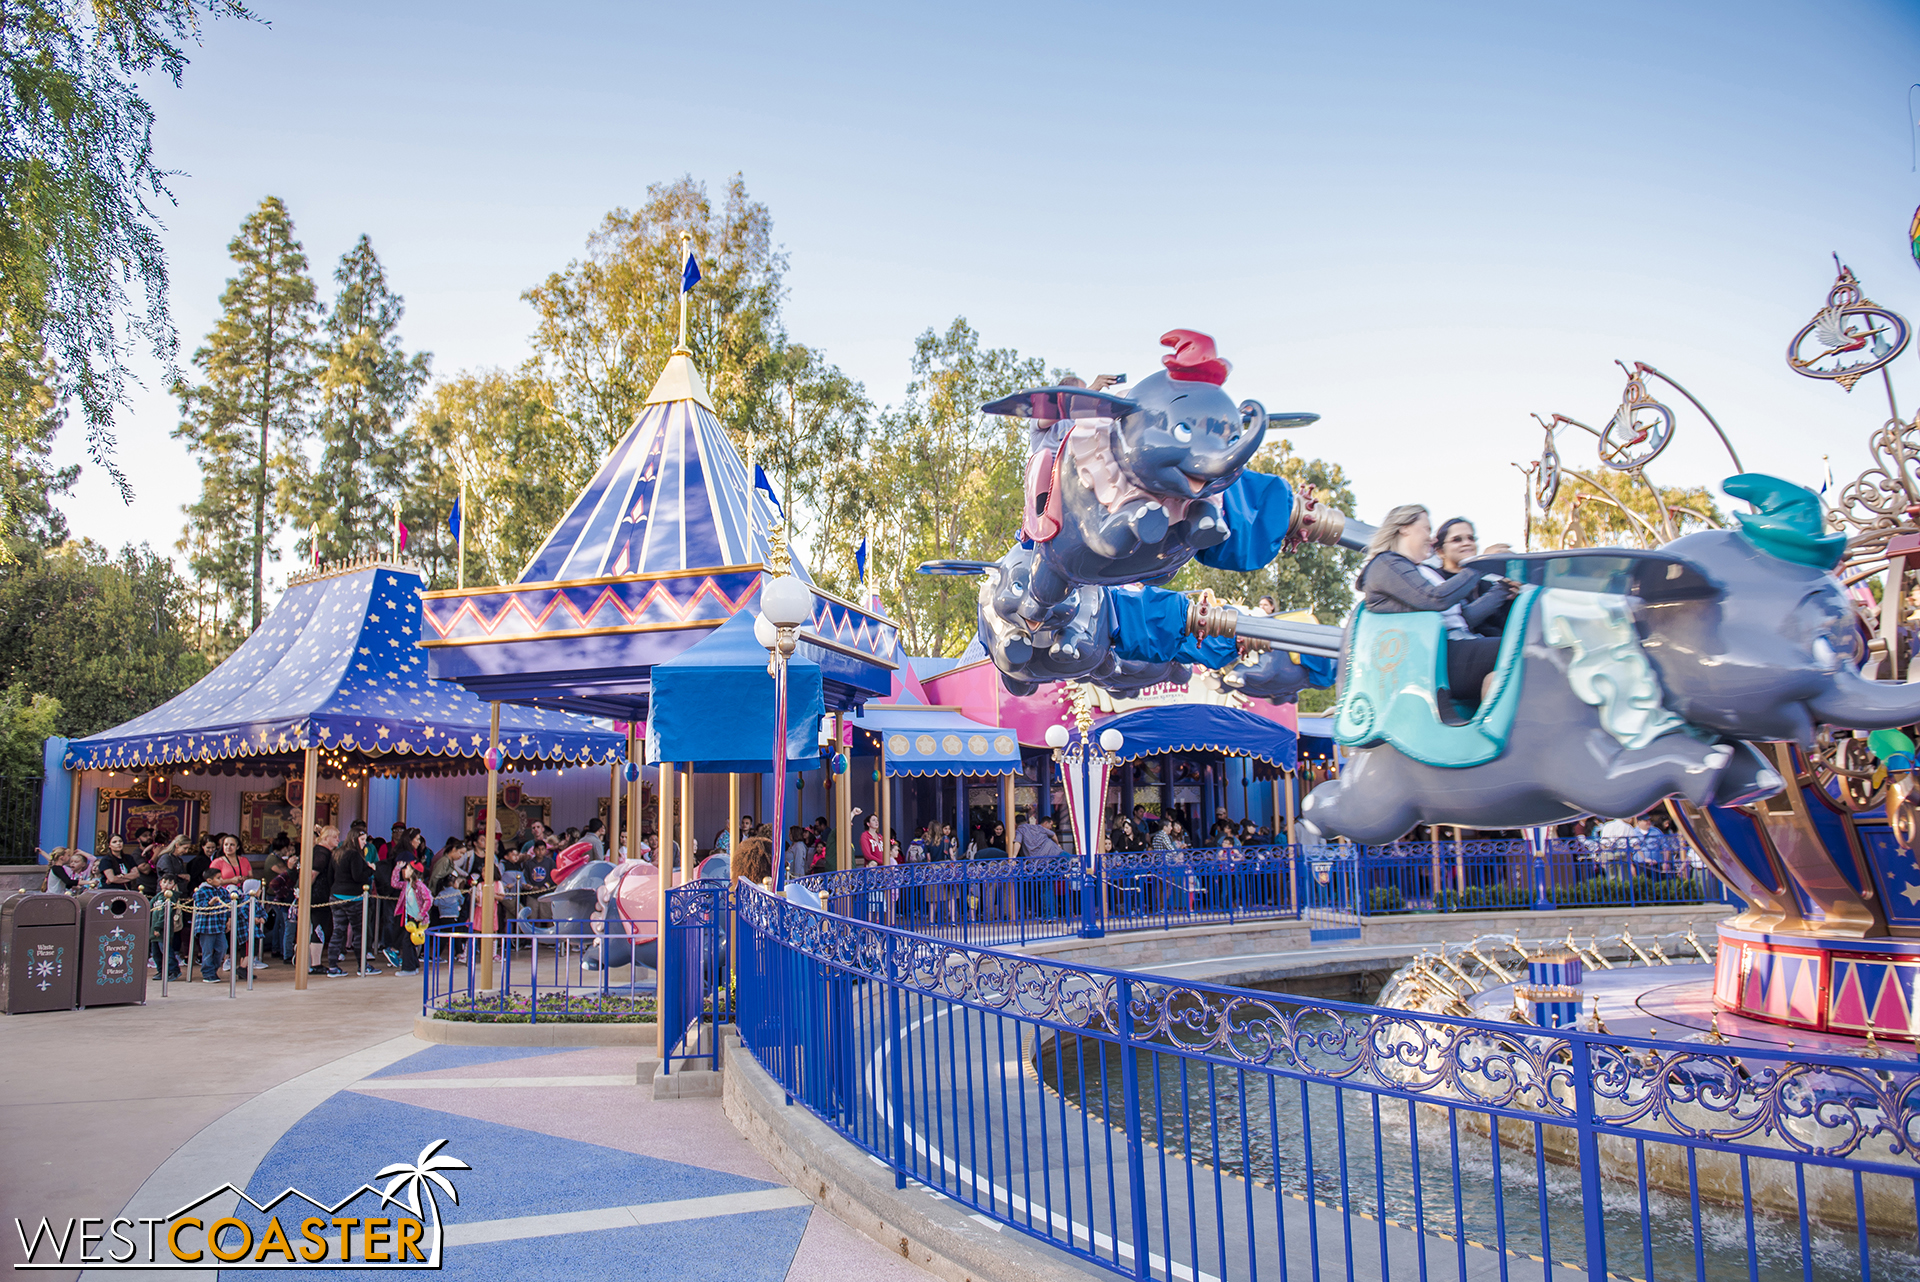 Here's the other side of the queue, with a canopy over the Dumbo ride vehicle photo op.